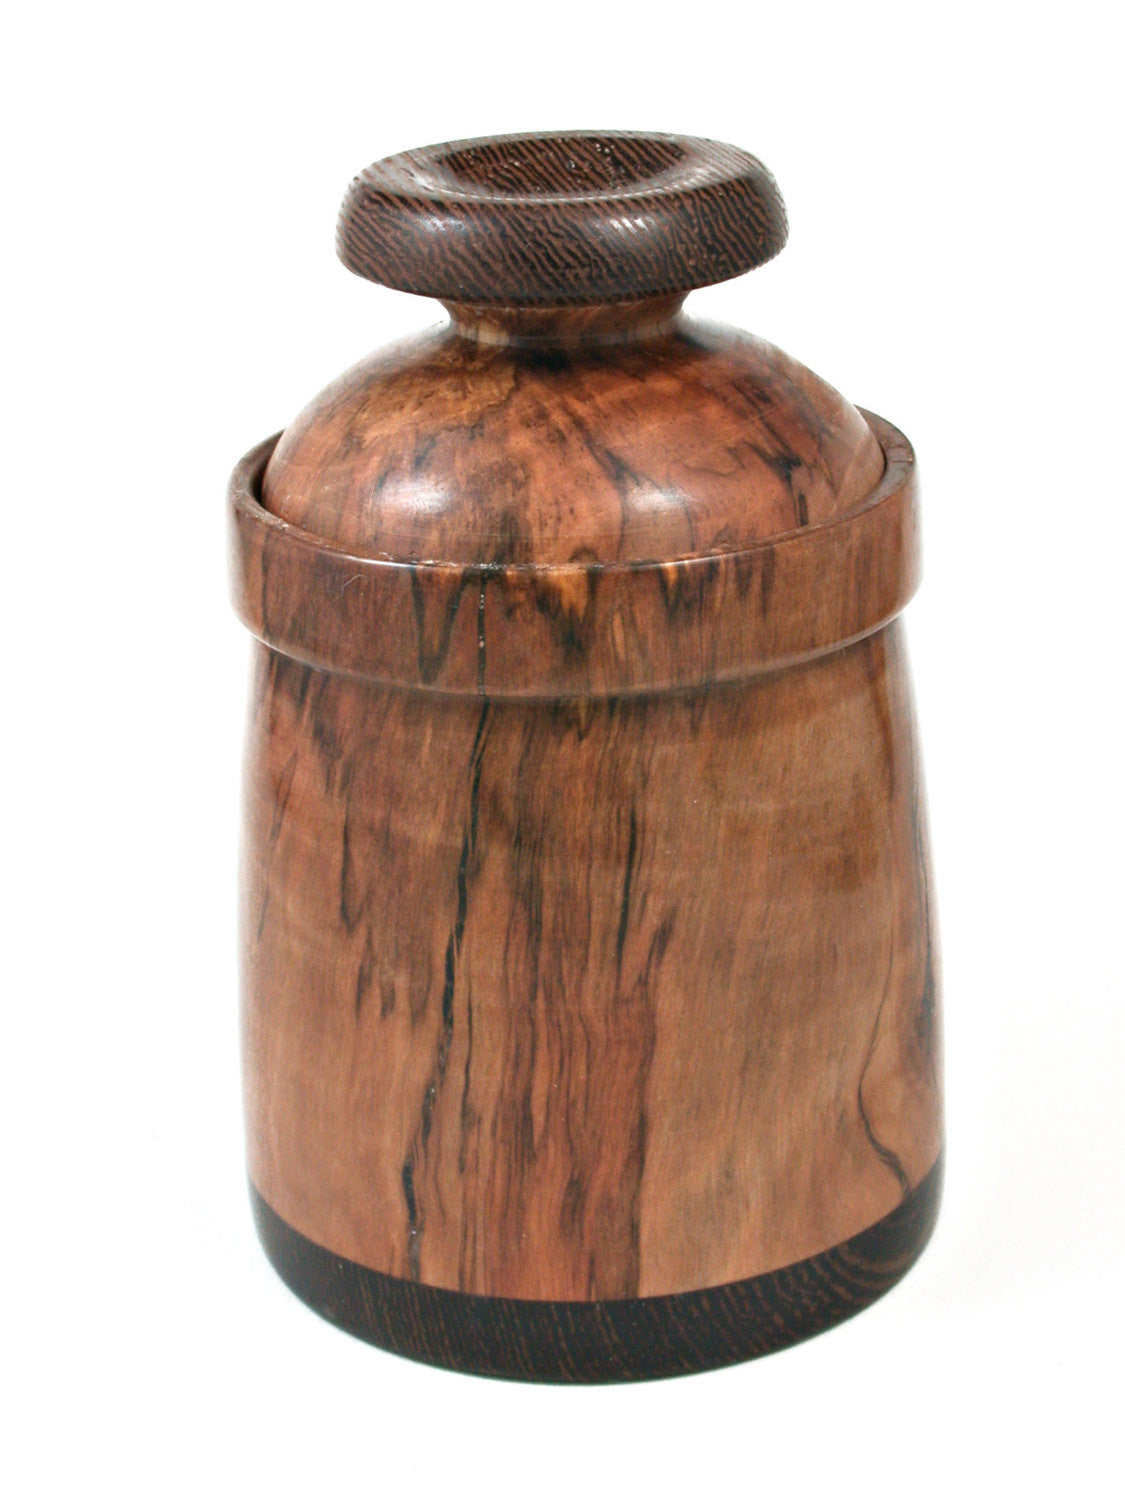 LV-0384  Spalted Photinia & Wenge Wood Turned Lidded Box, Jewelry Box-NICE